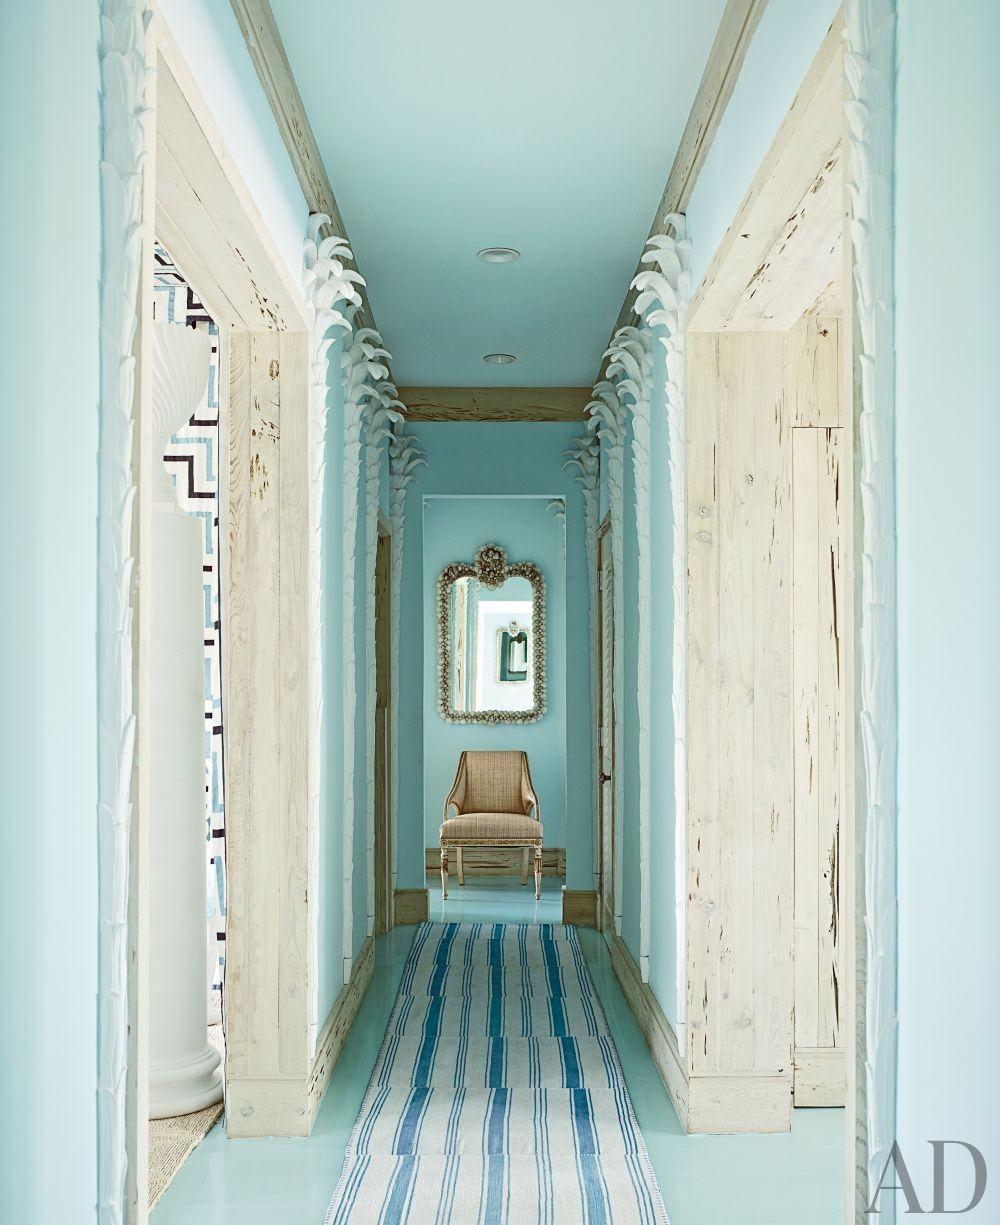 beachhouse-how-to-decorate-narrow-hallway-entryway-turquoise-paint-walls-home-house-decorating-ideas-inspiration-white-washed-weathere-wood-floors-door-moulding-molding-cream-antique-gold